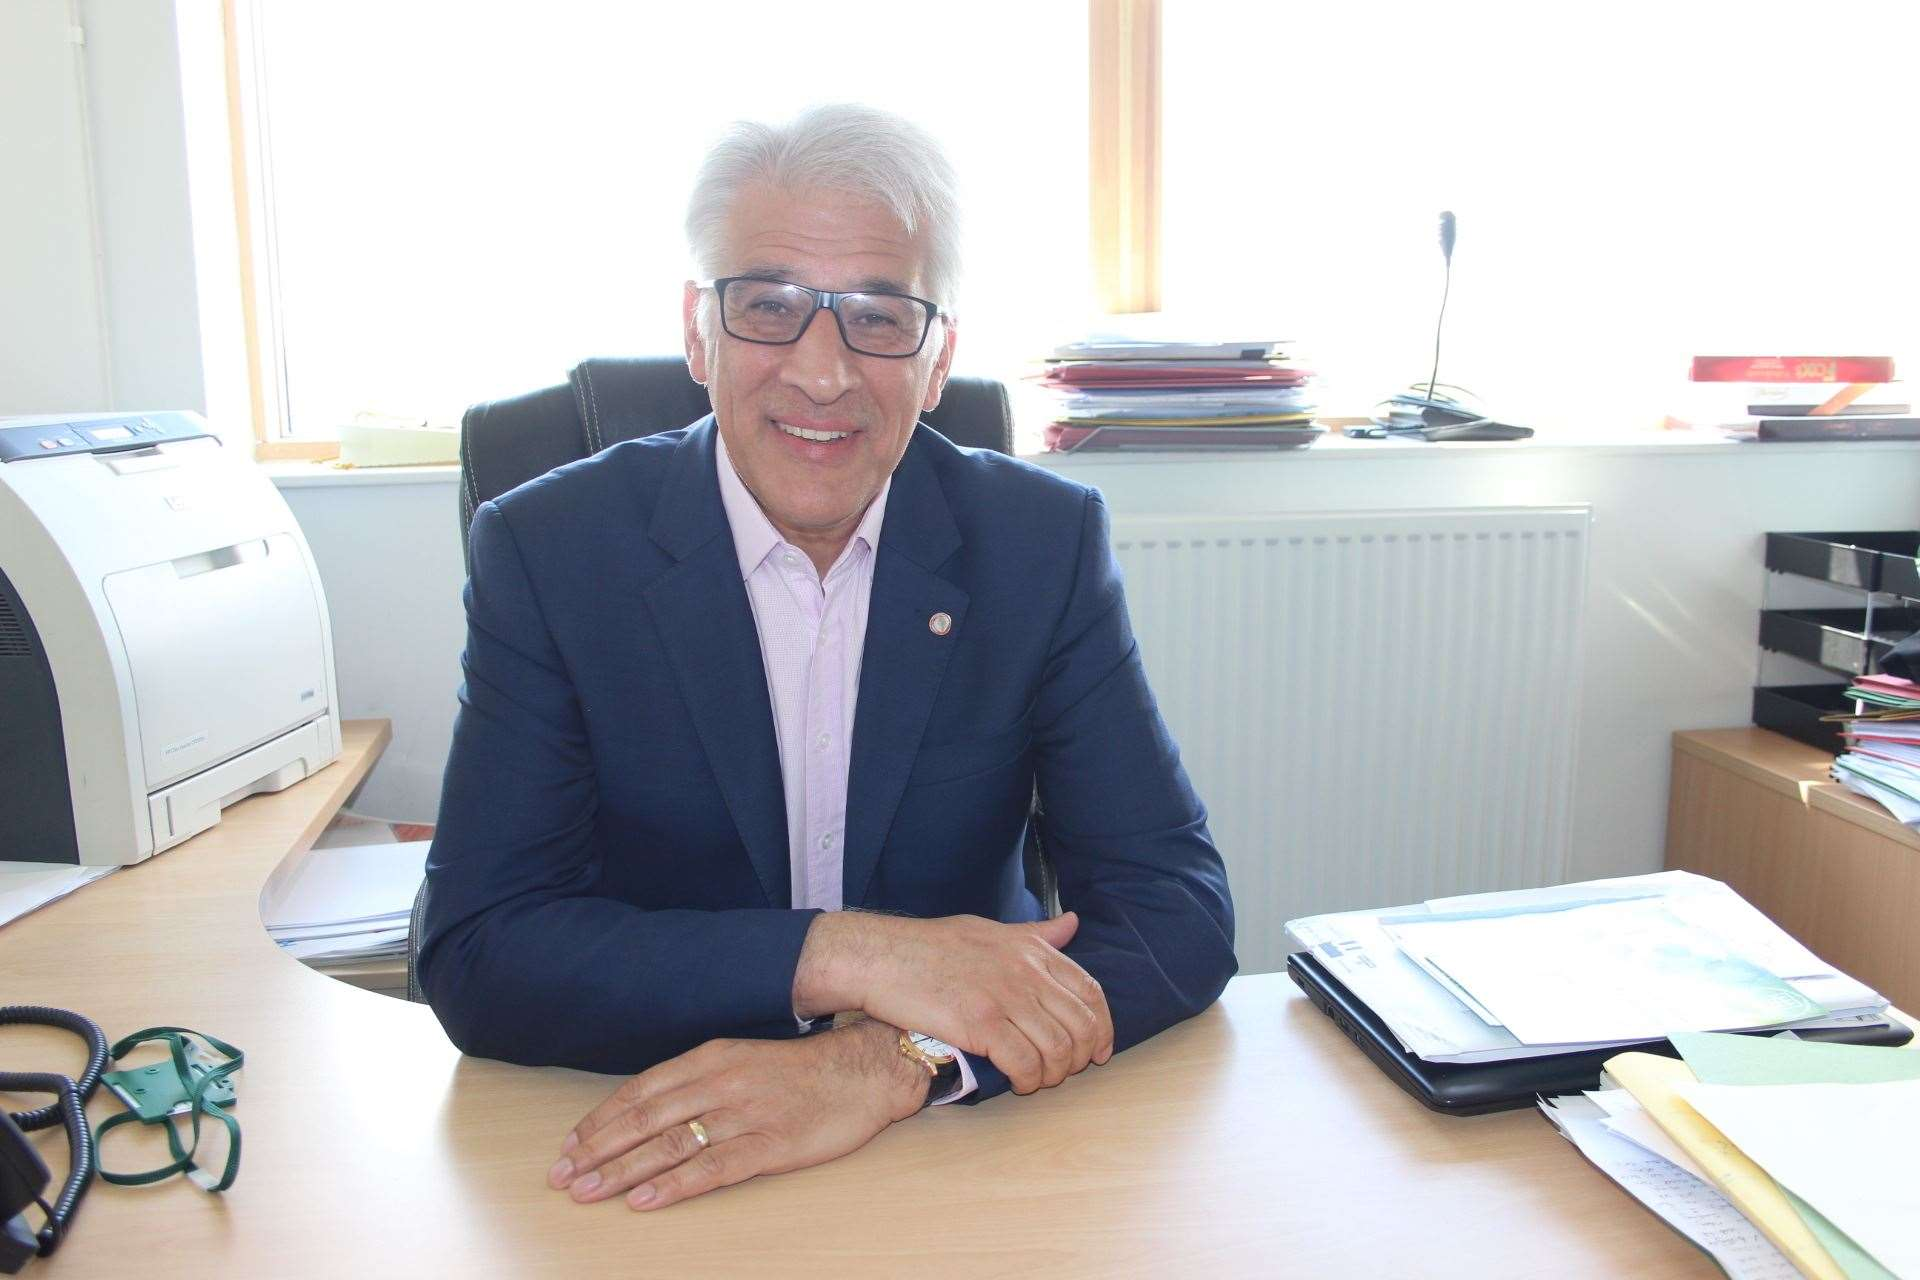 Steve Chalke, chief executive of Oasis Academy, thinks March 8 is too soon for all pupils to return